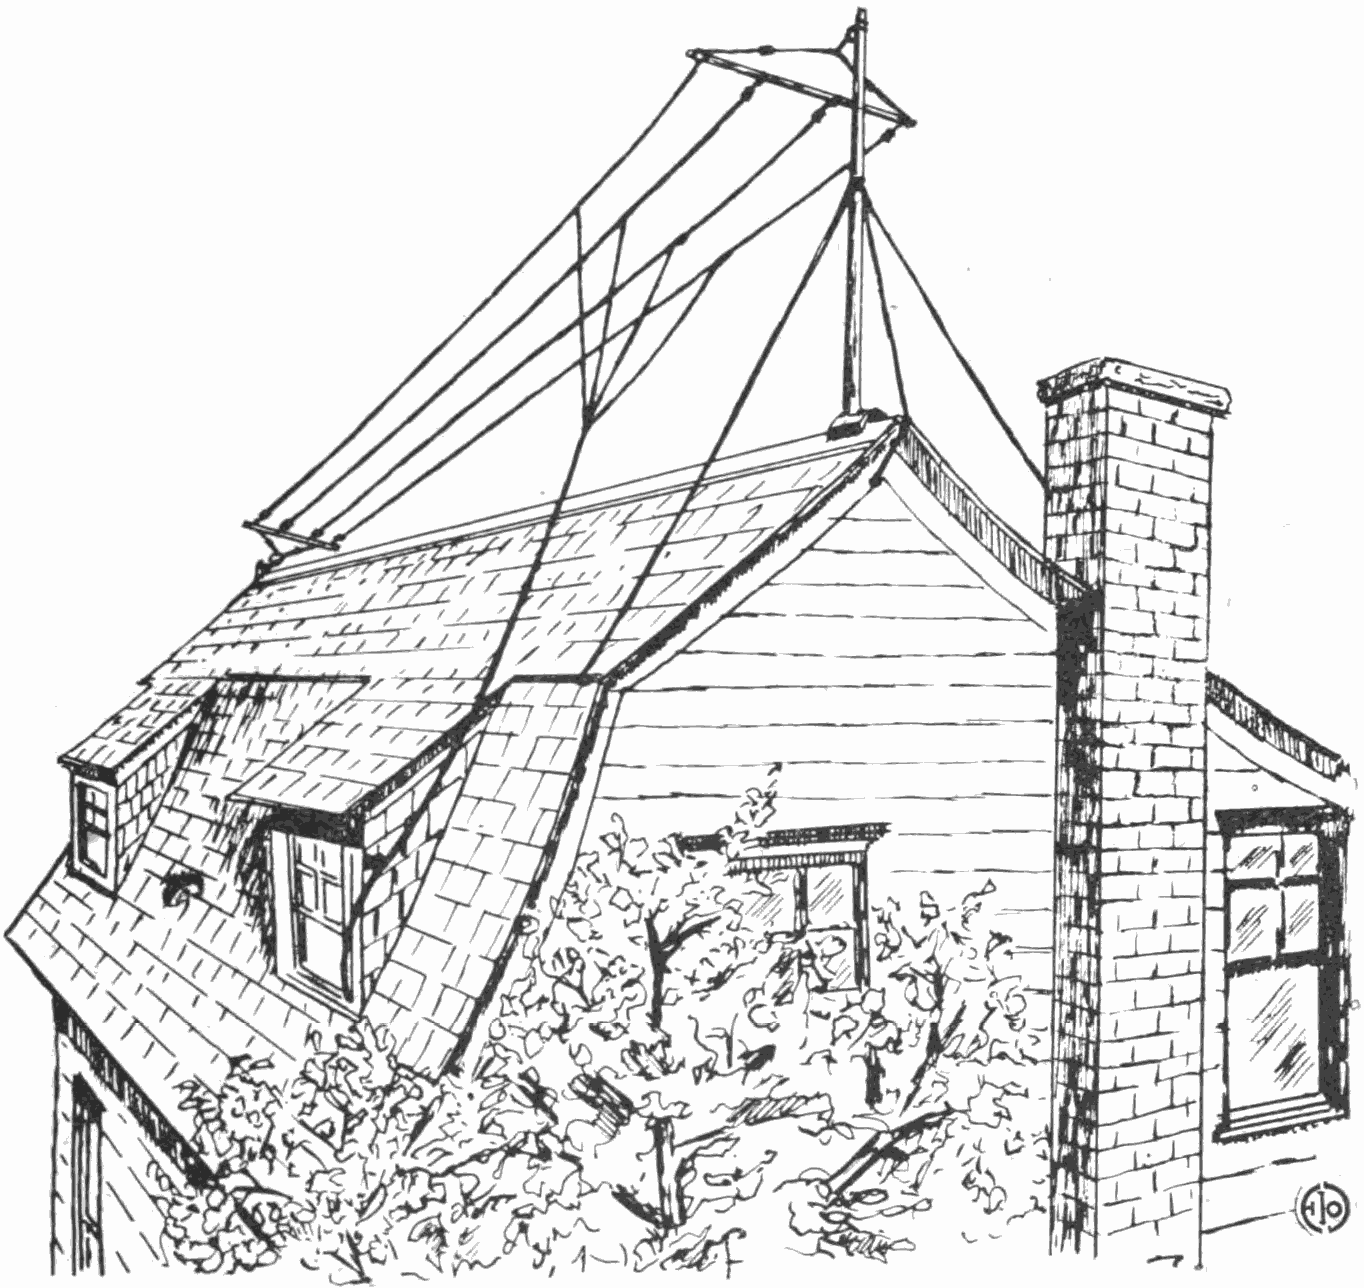 Fileamateur Radio T Antenna 1912 Wikimedia Commons Gap An Wiring Diagram